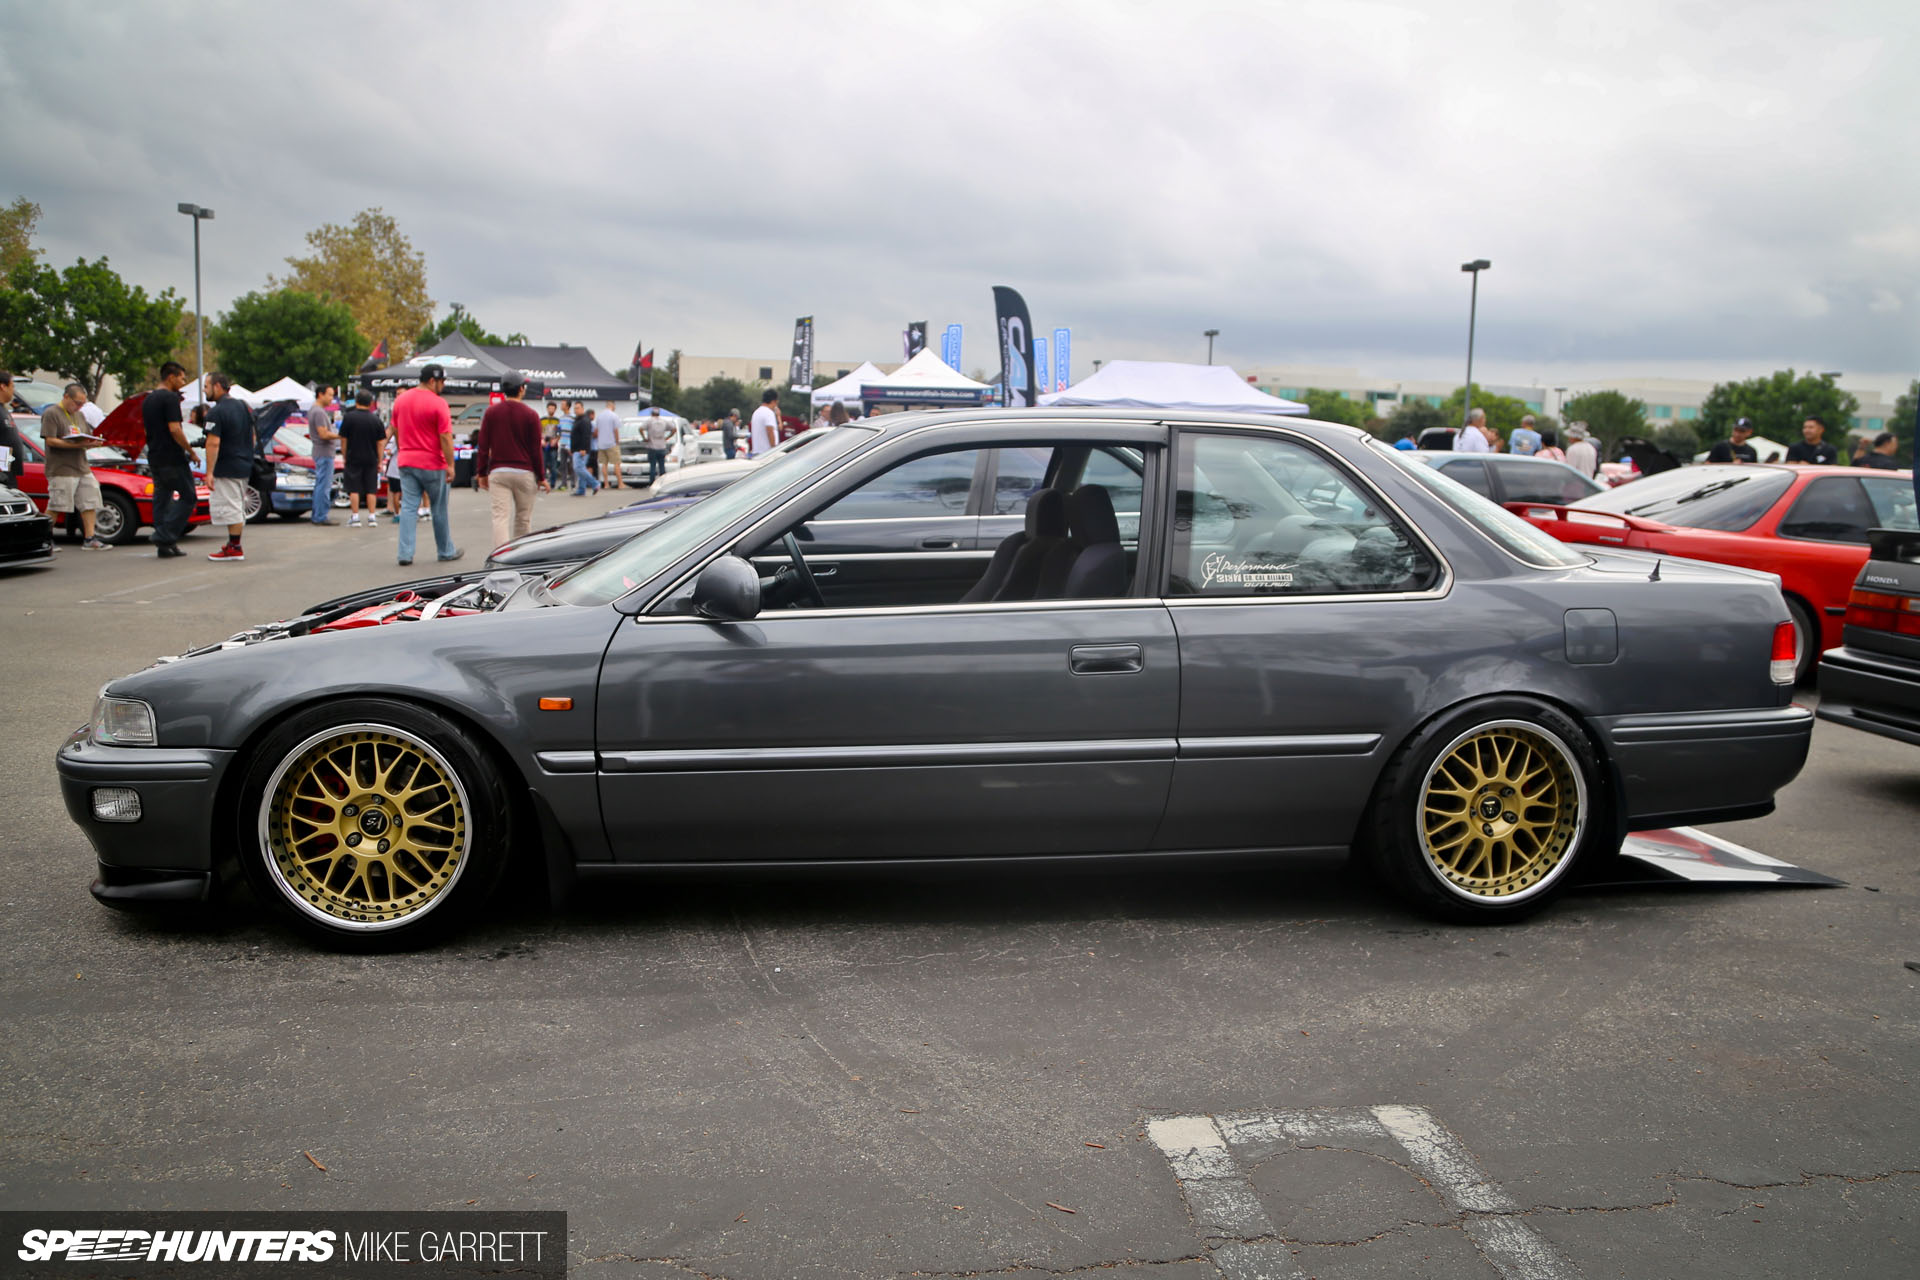 How To Build An Accord - Speedhunters